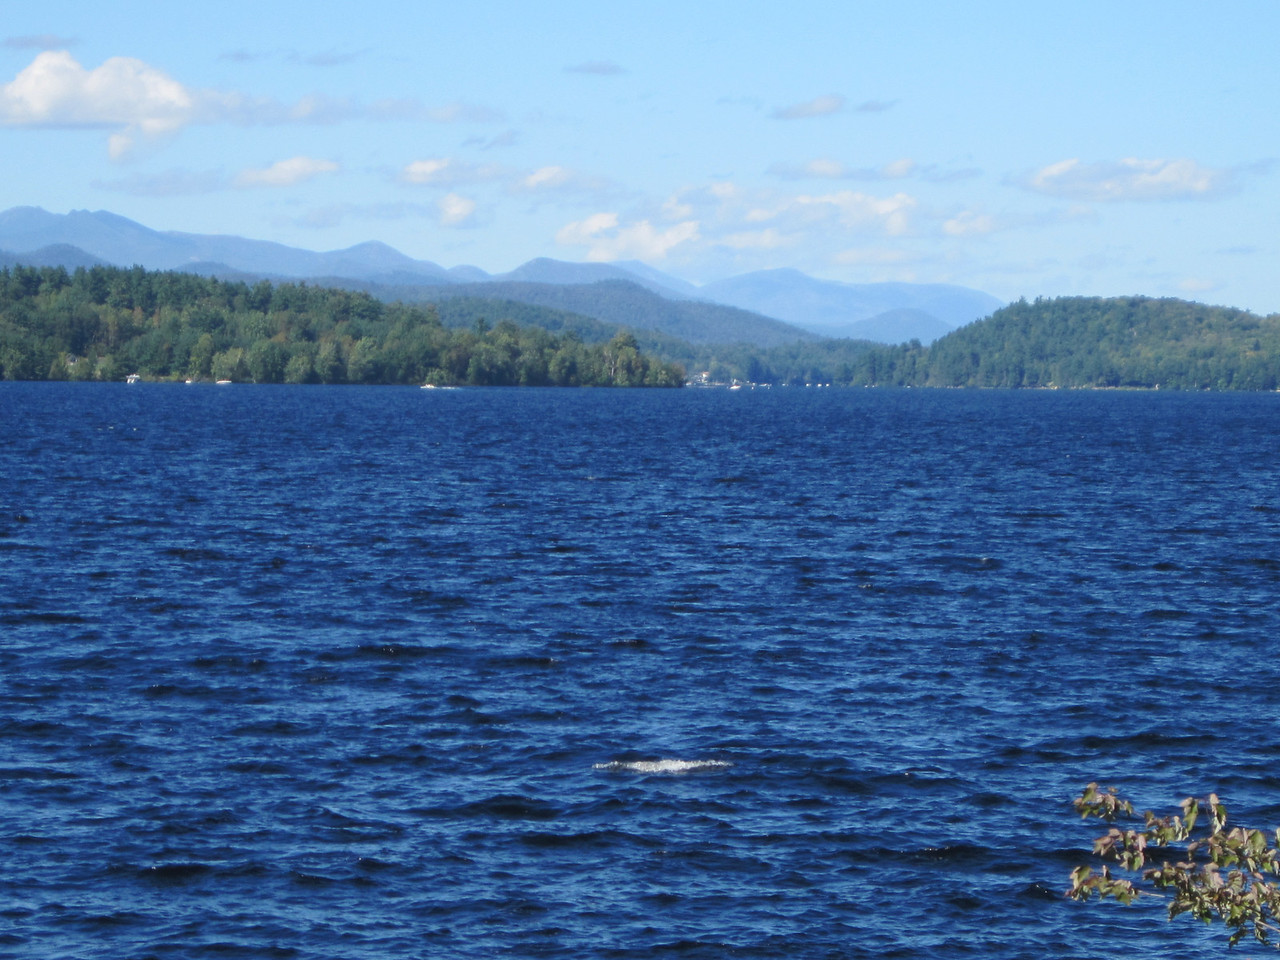 While Julie was trying to take a picture of the entire Dix range, she inadvertently caught a picture of the man-eating Schroon Lake Sea Monster. We did not even know how close we were to being fish food. Luckily I can ride pretty fast to escape danger, or at least out ride Julie.